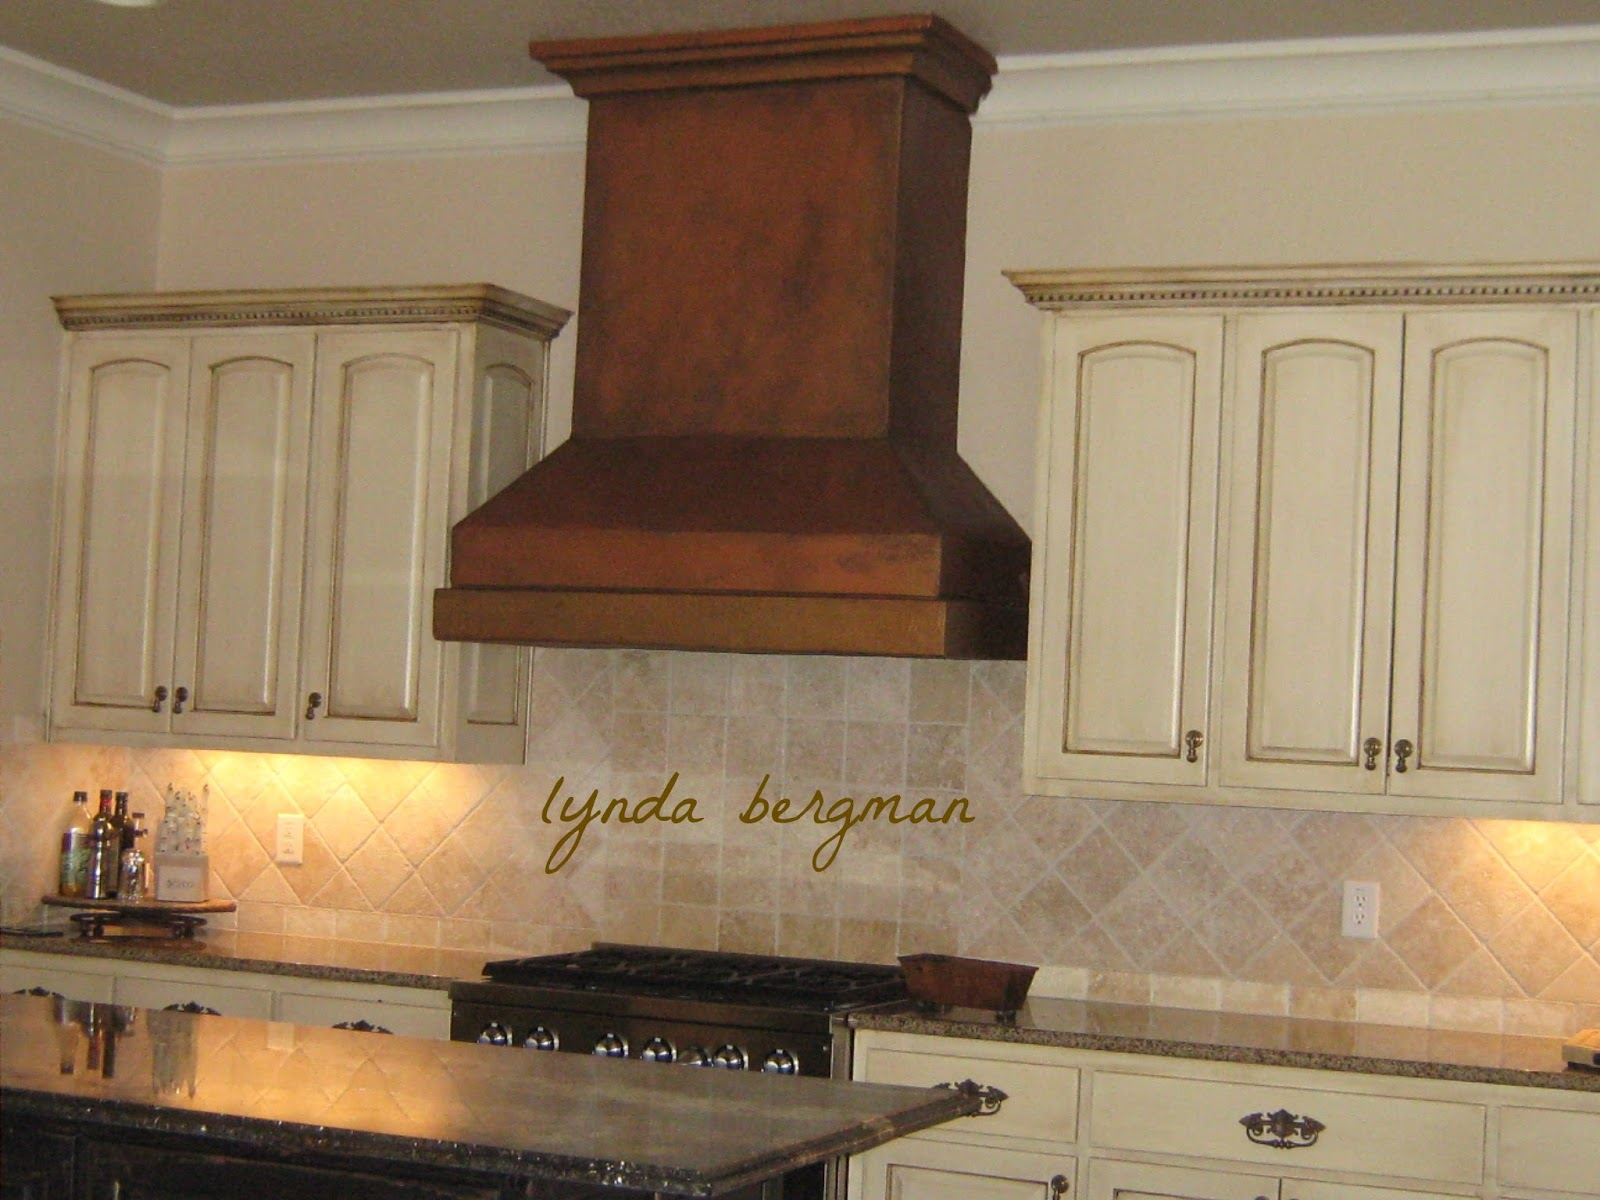 Lynda Bergman Decorative Artisan Christa's Newly Painted. Kitchen Table Advisors. Dream Kitchen Food Prep. Kitchen Dining Paint Colors. Kitchen Hood Vent Ideas. Quarter Circle Kitchen Island. Kitchen And Bathroom Haven. Kitchen Bench Amazon. Kitchen Interior Youtube